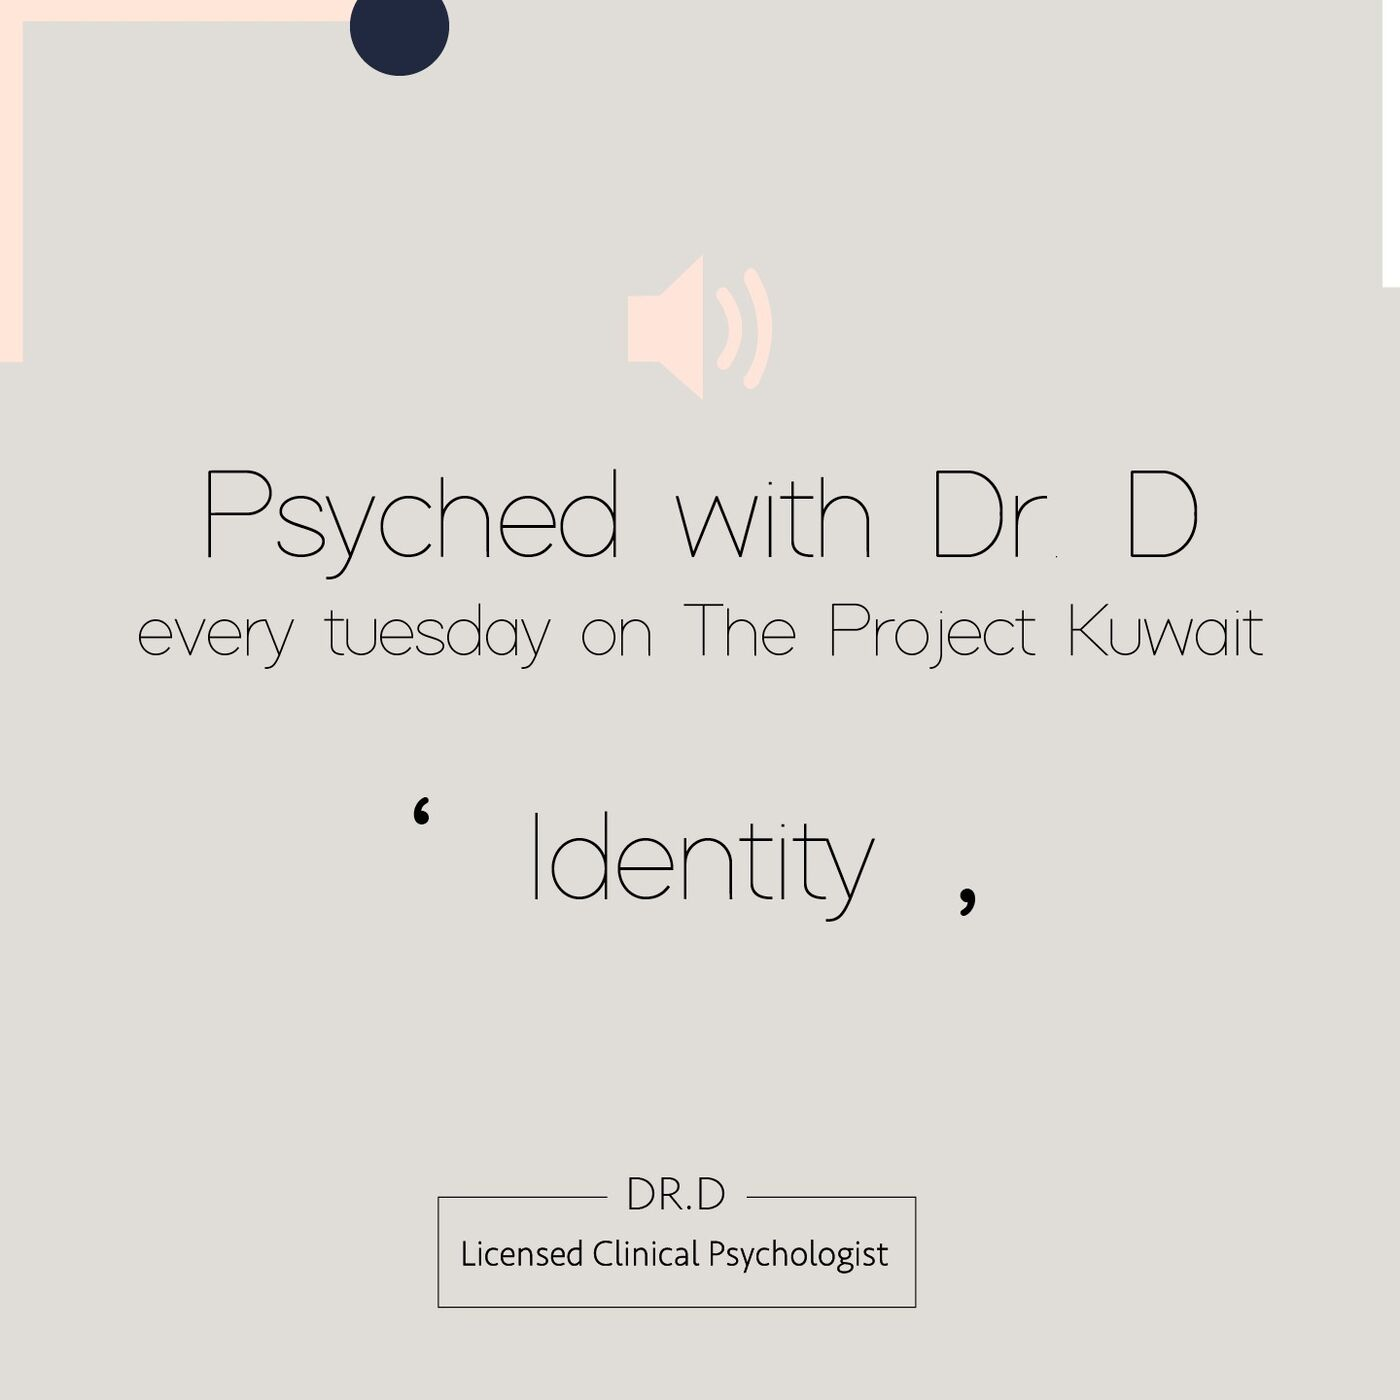 Psyched With Dr. D : Identity Challenge, Crisis or Just Plain Confused? We Discuss Self Discovery, Affiliation with One's Culture and True belonging